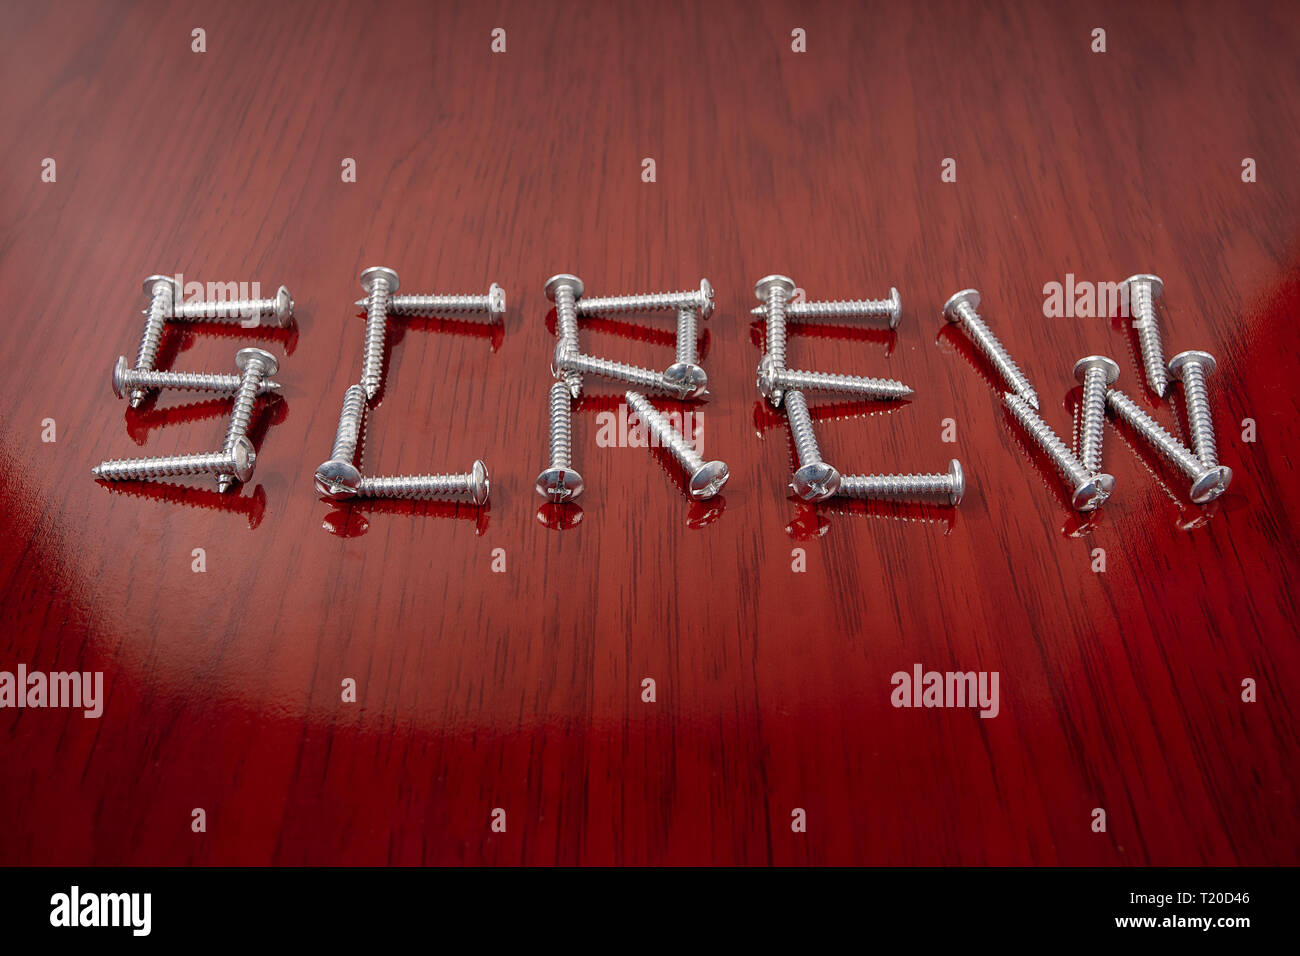 An organized group of screws forming the word screw - Stock Image